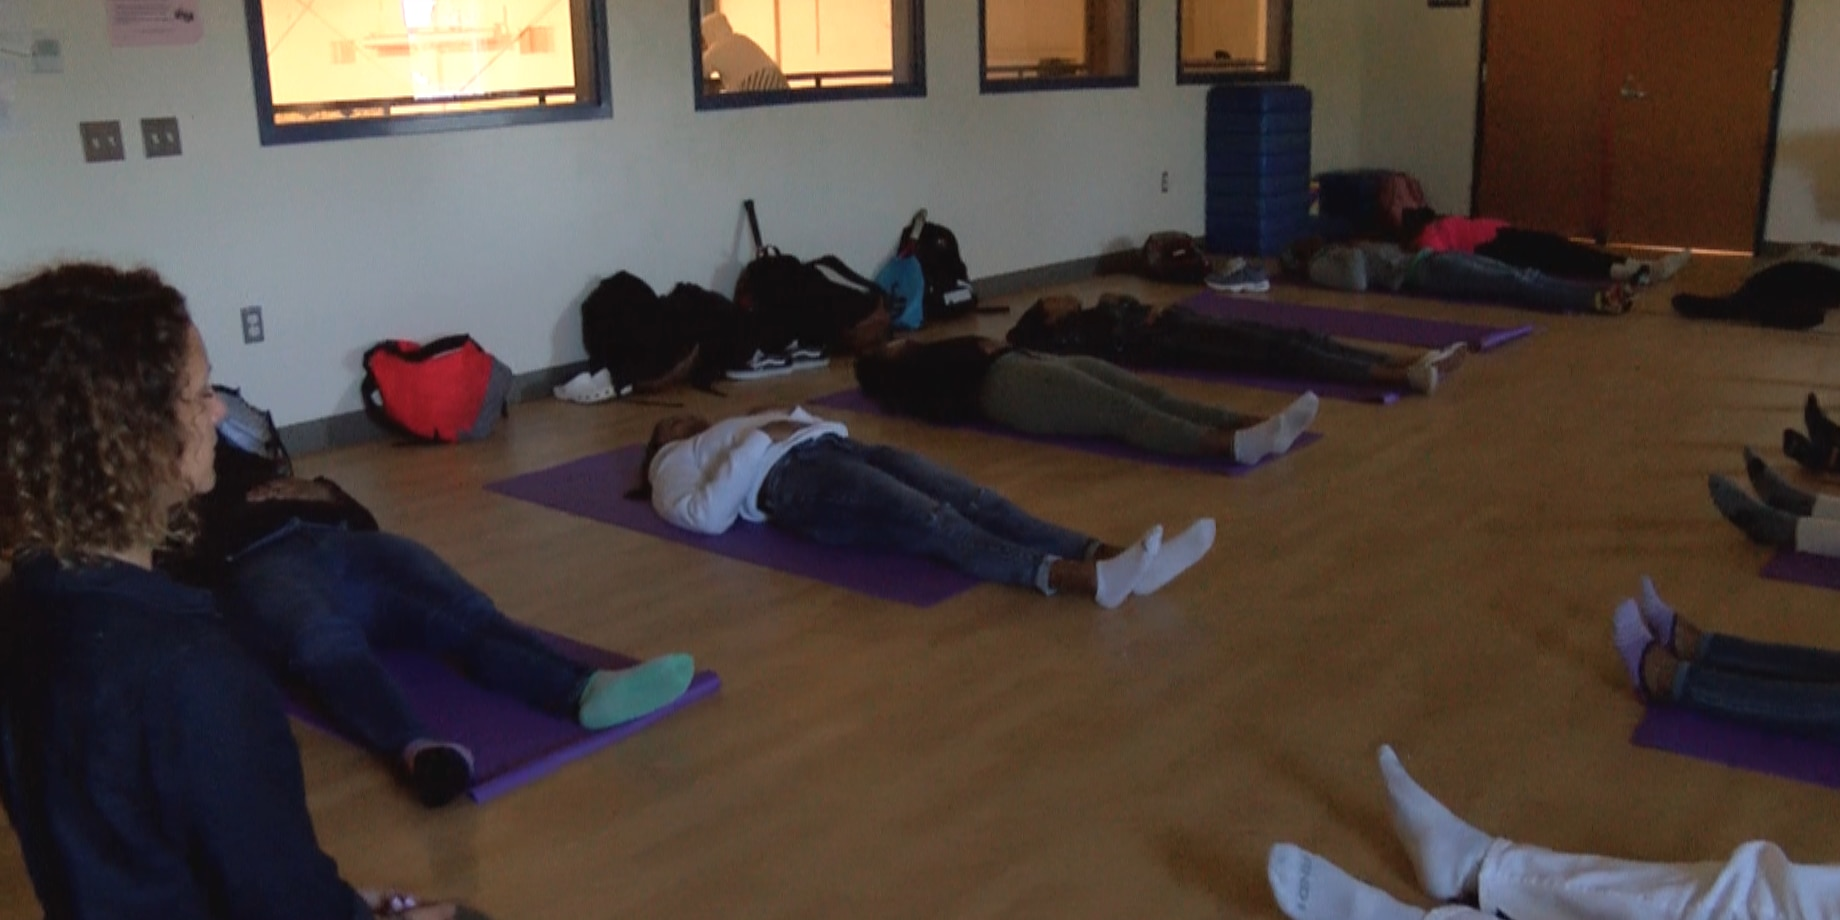 Students meditate, relax through 'Varina On Chill' class